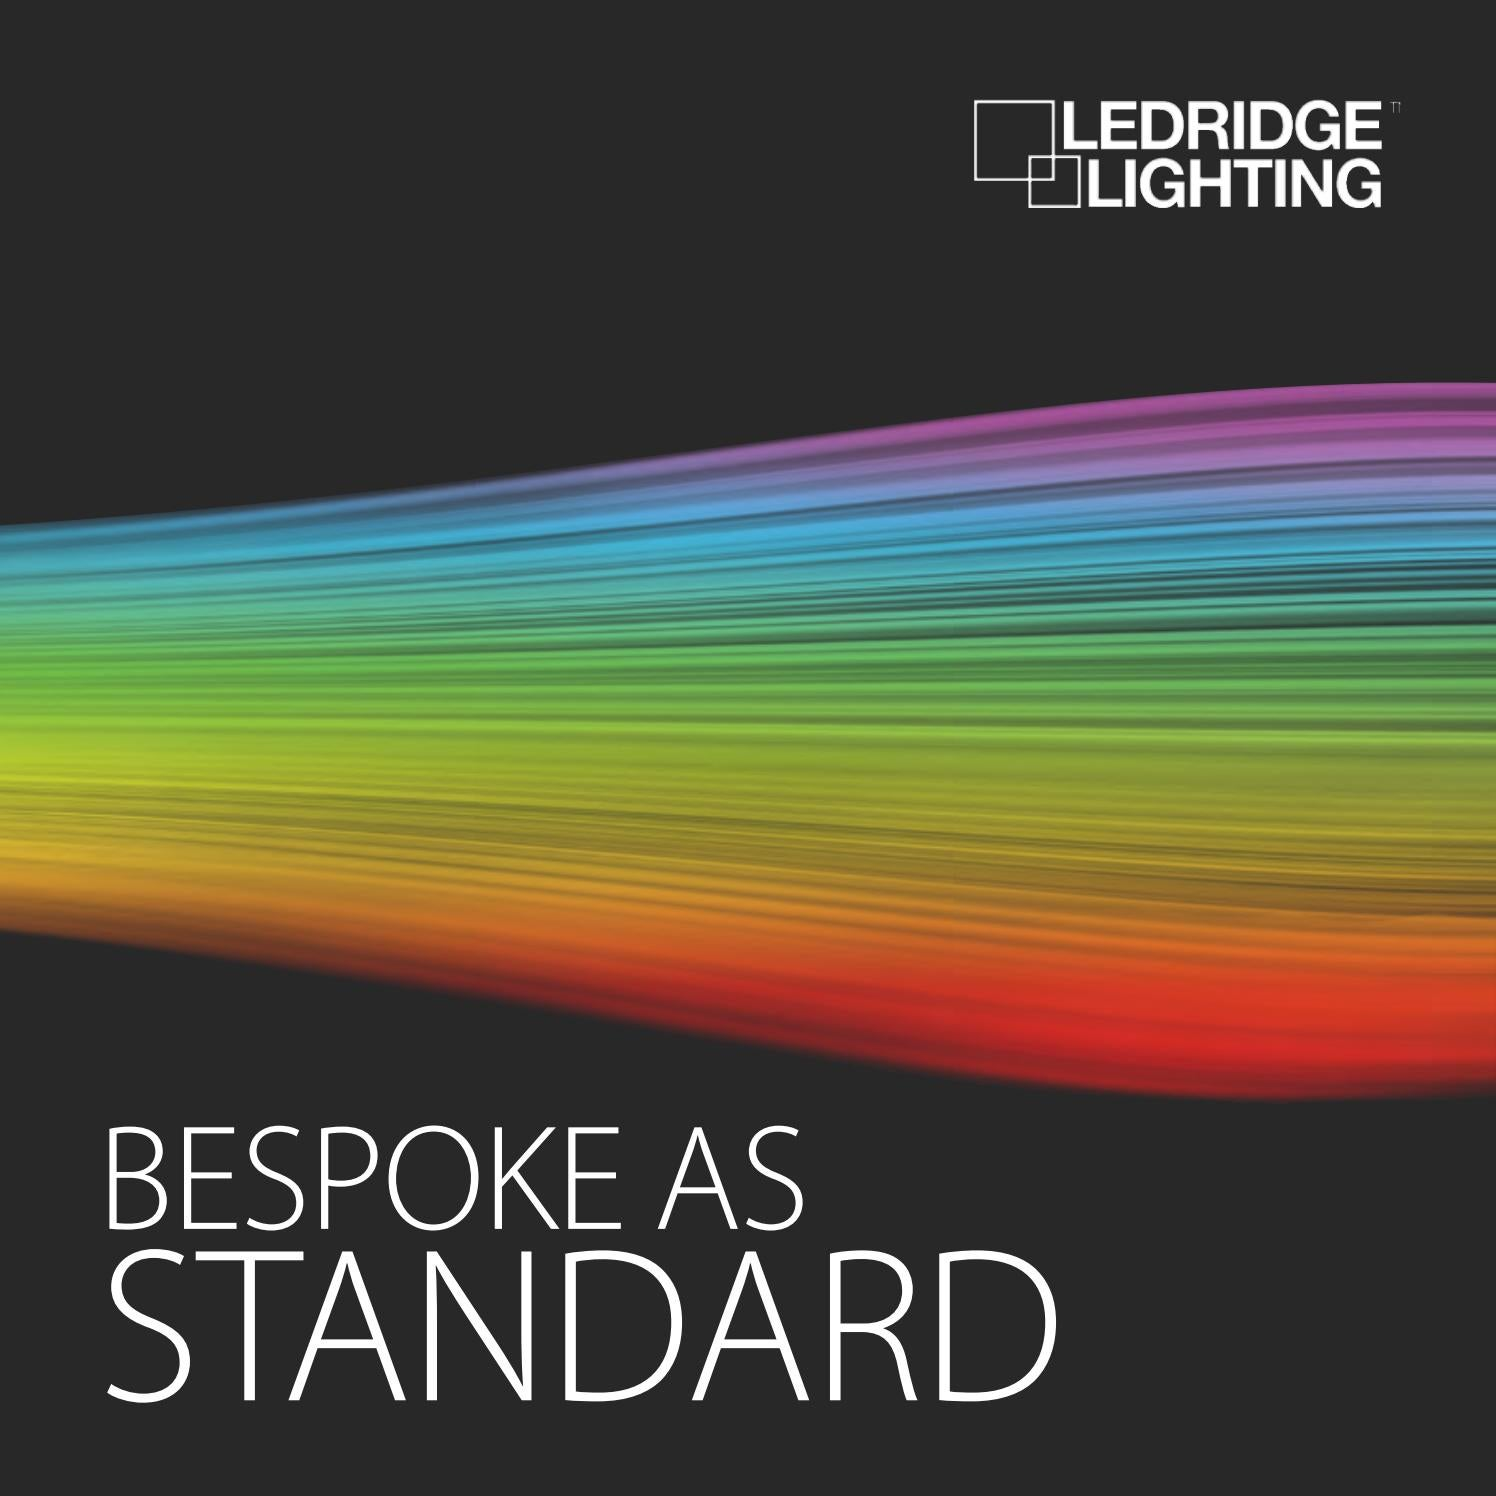 Warehouse Lighting Lux Levels Uk: Ledridge Lighting Catalogue